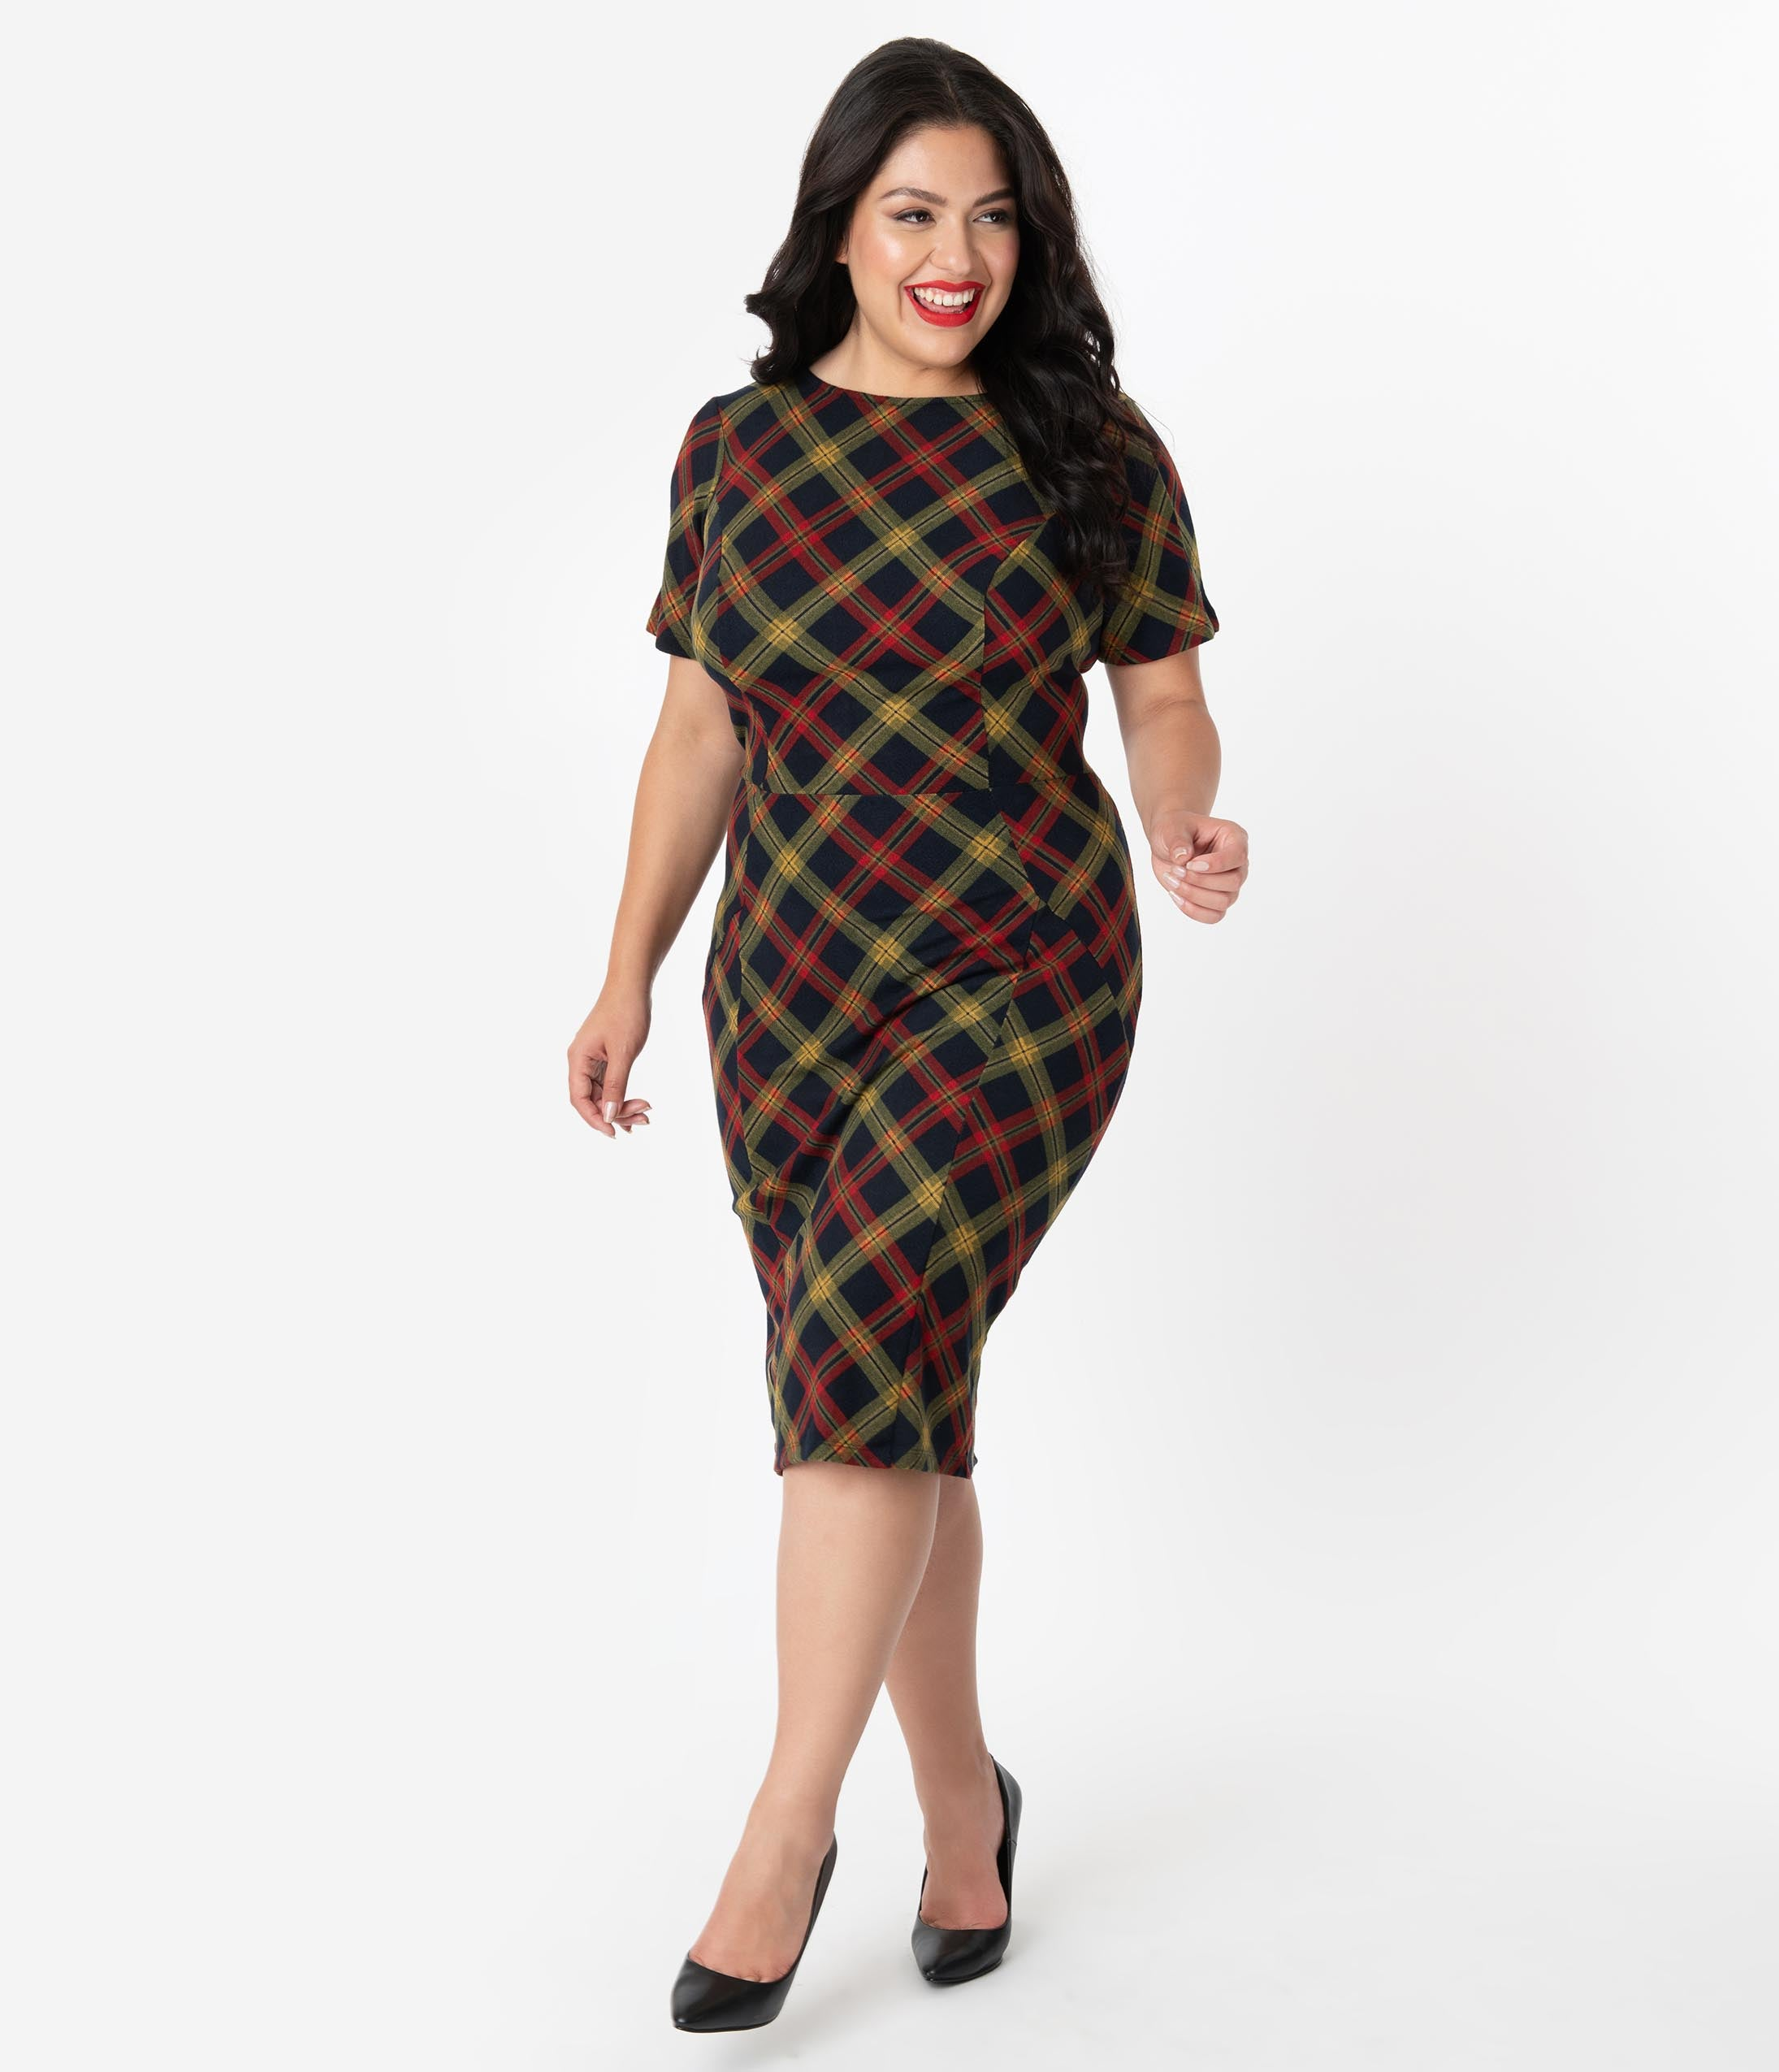 1950s Dresses, 50s Dresses | 1950s Style Dresses Unique Vintage Plus Size 1960S Style Burgundy  Mustard Plaid Short Sleeve Mod Wiggle Dress $58.00 AT vintagedancer.com